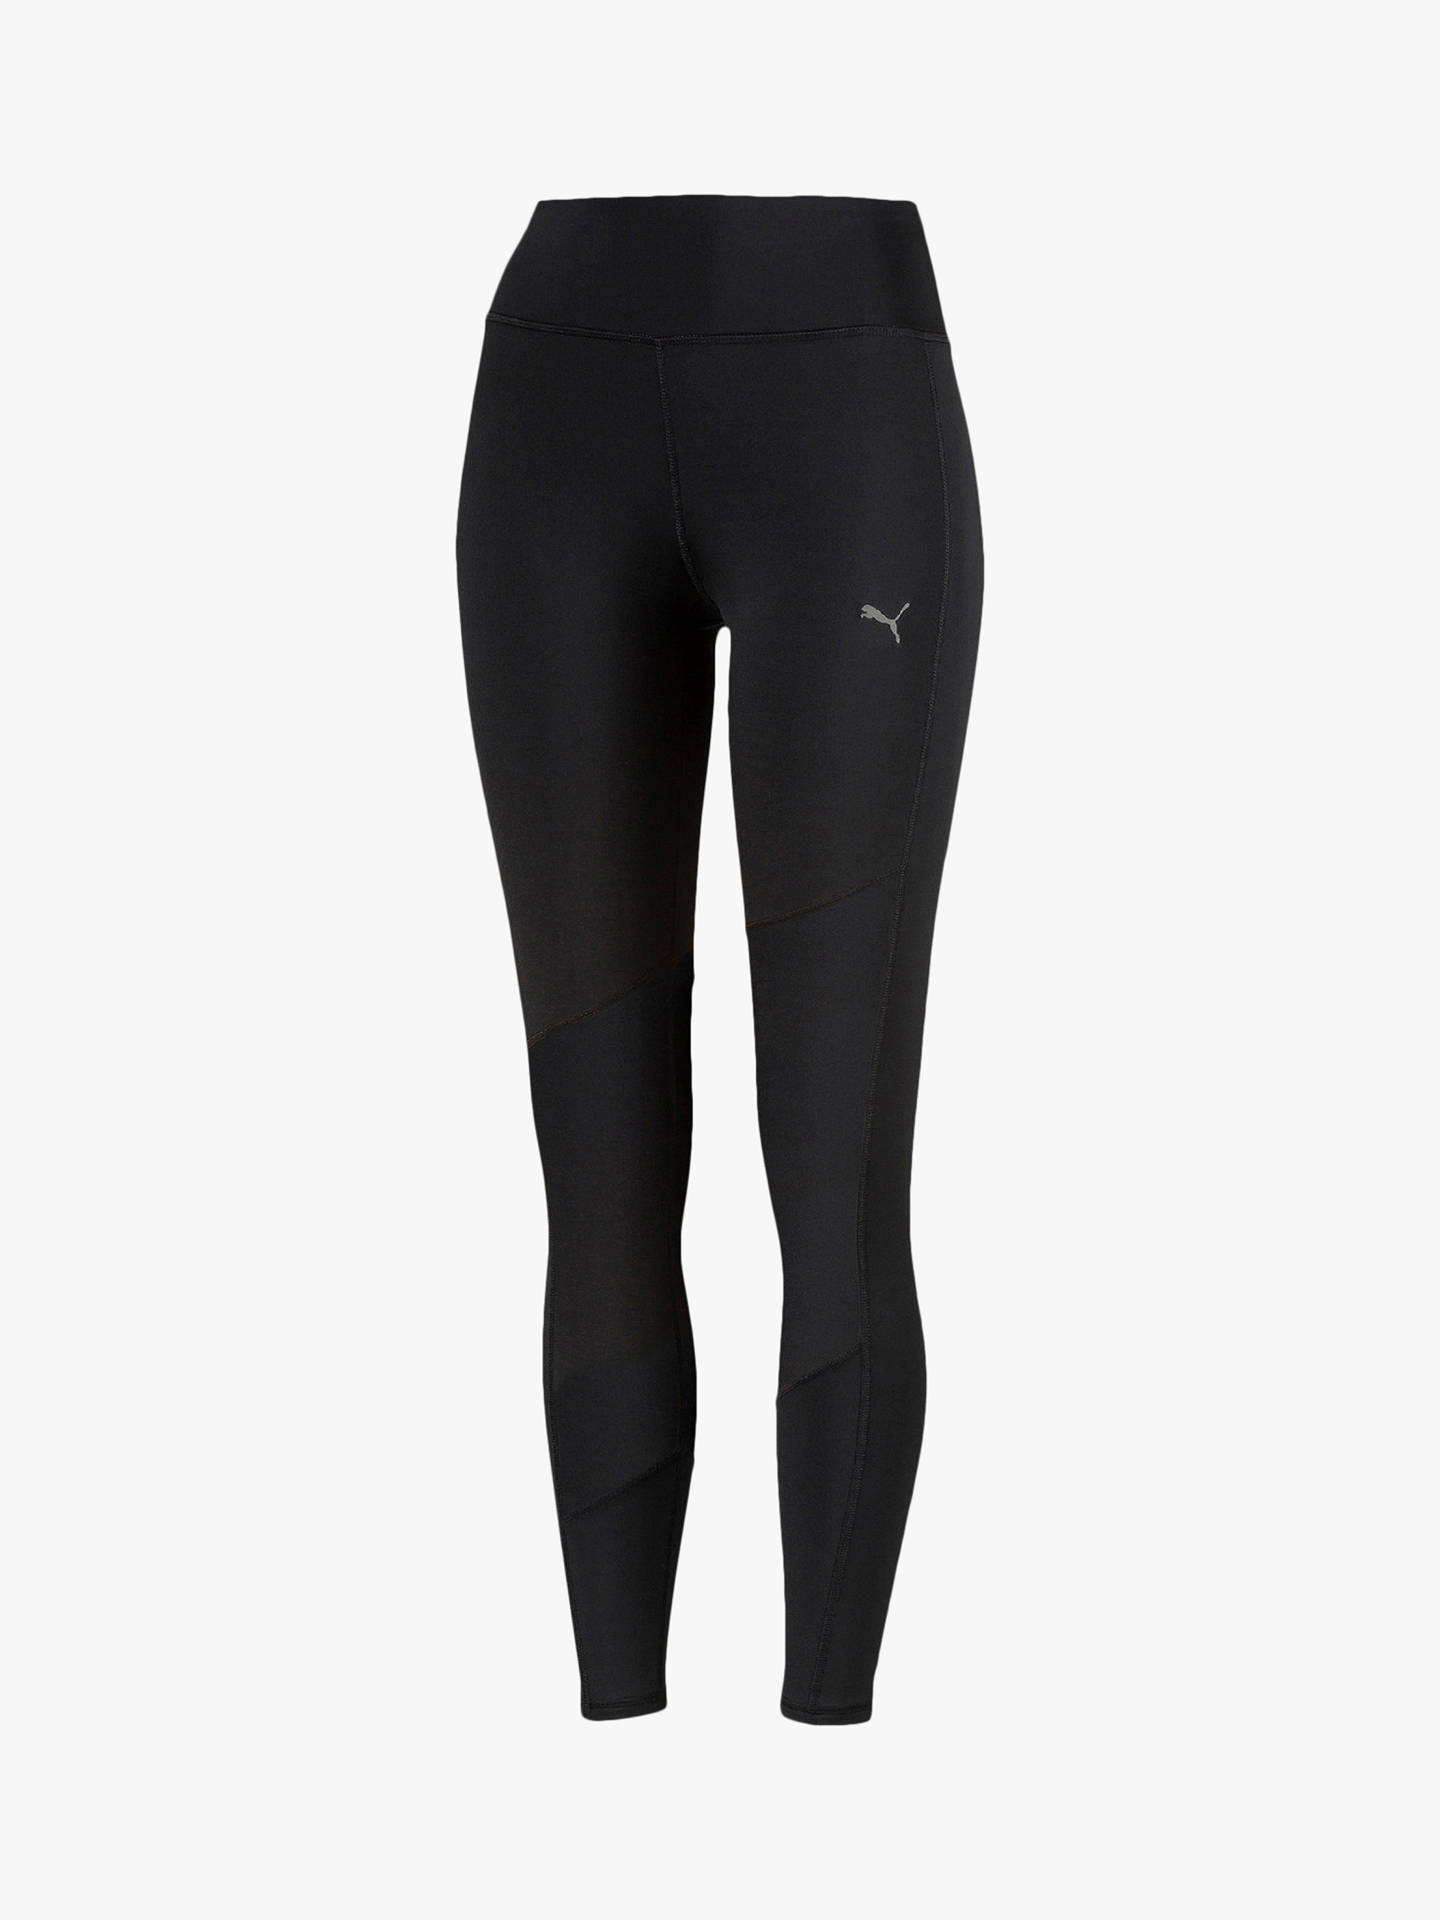 Storbritannien stor rabatt nytt koncept PUMA Always Solid 7/8 Leggings, Black at John Lewis & Partners